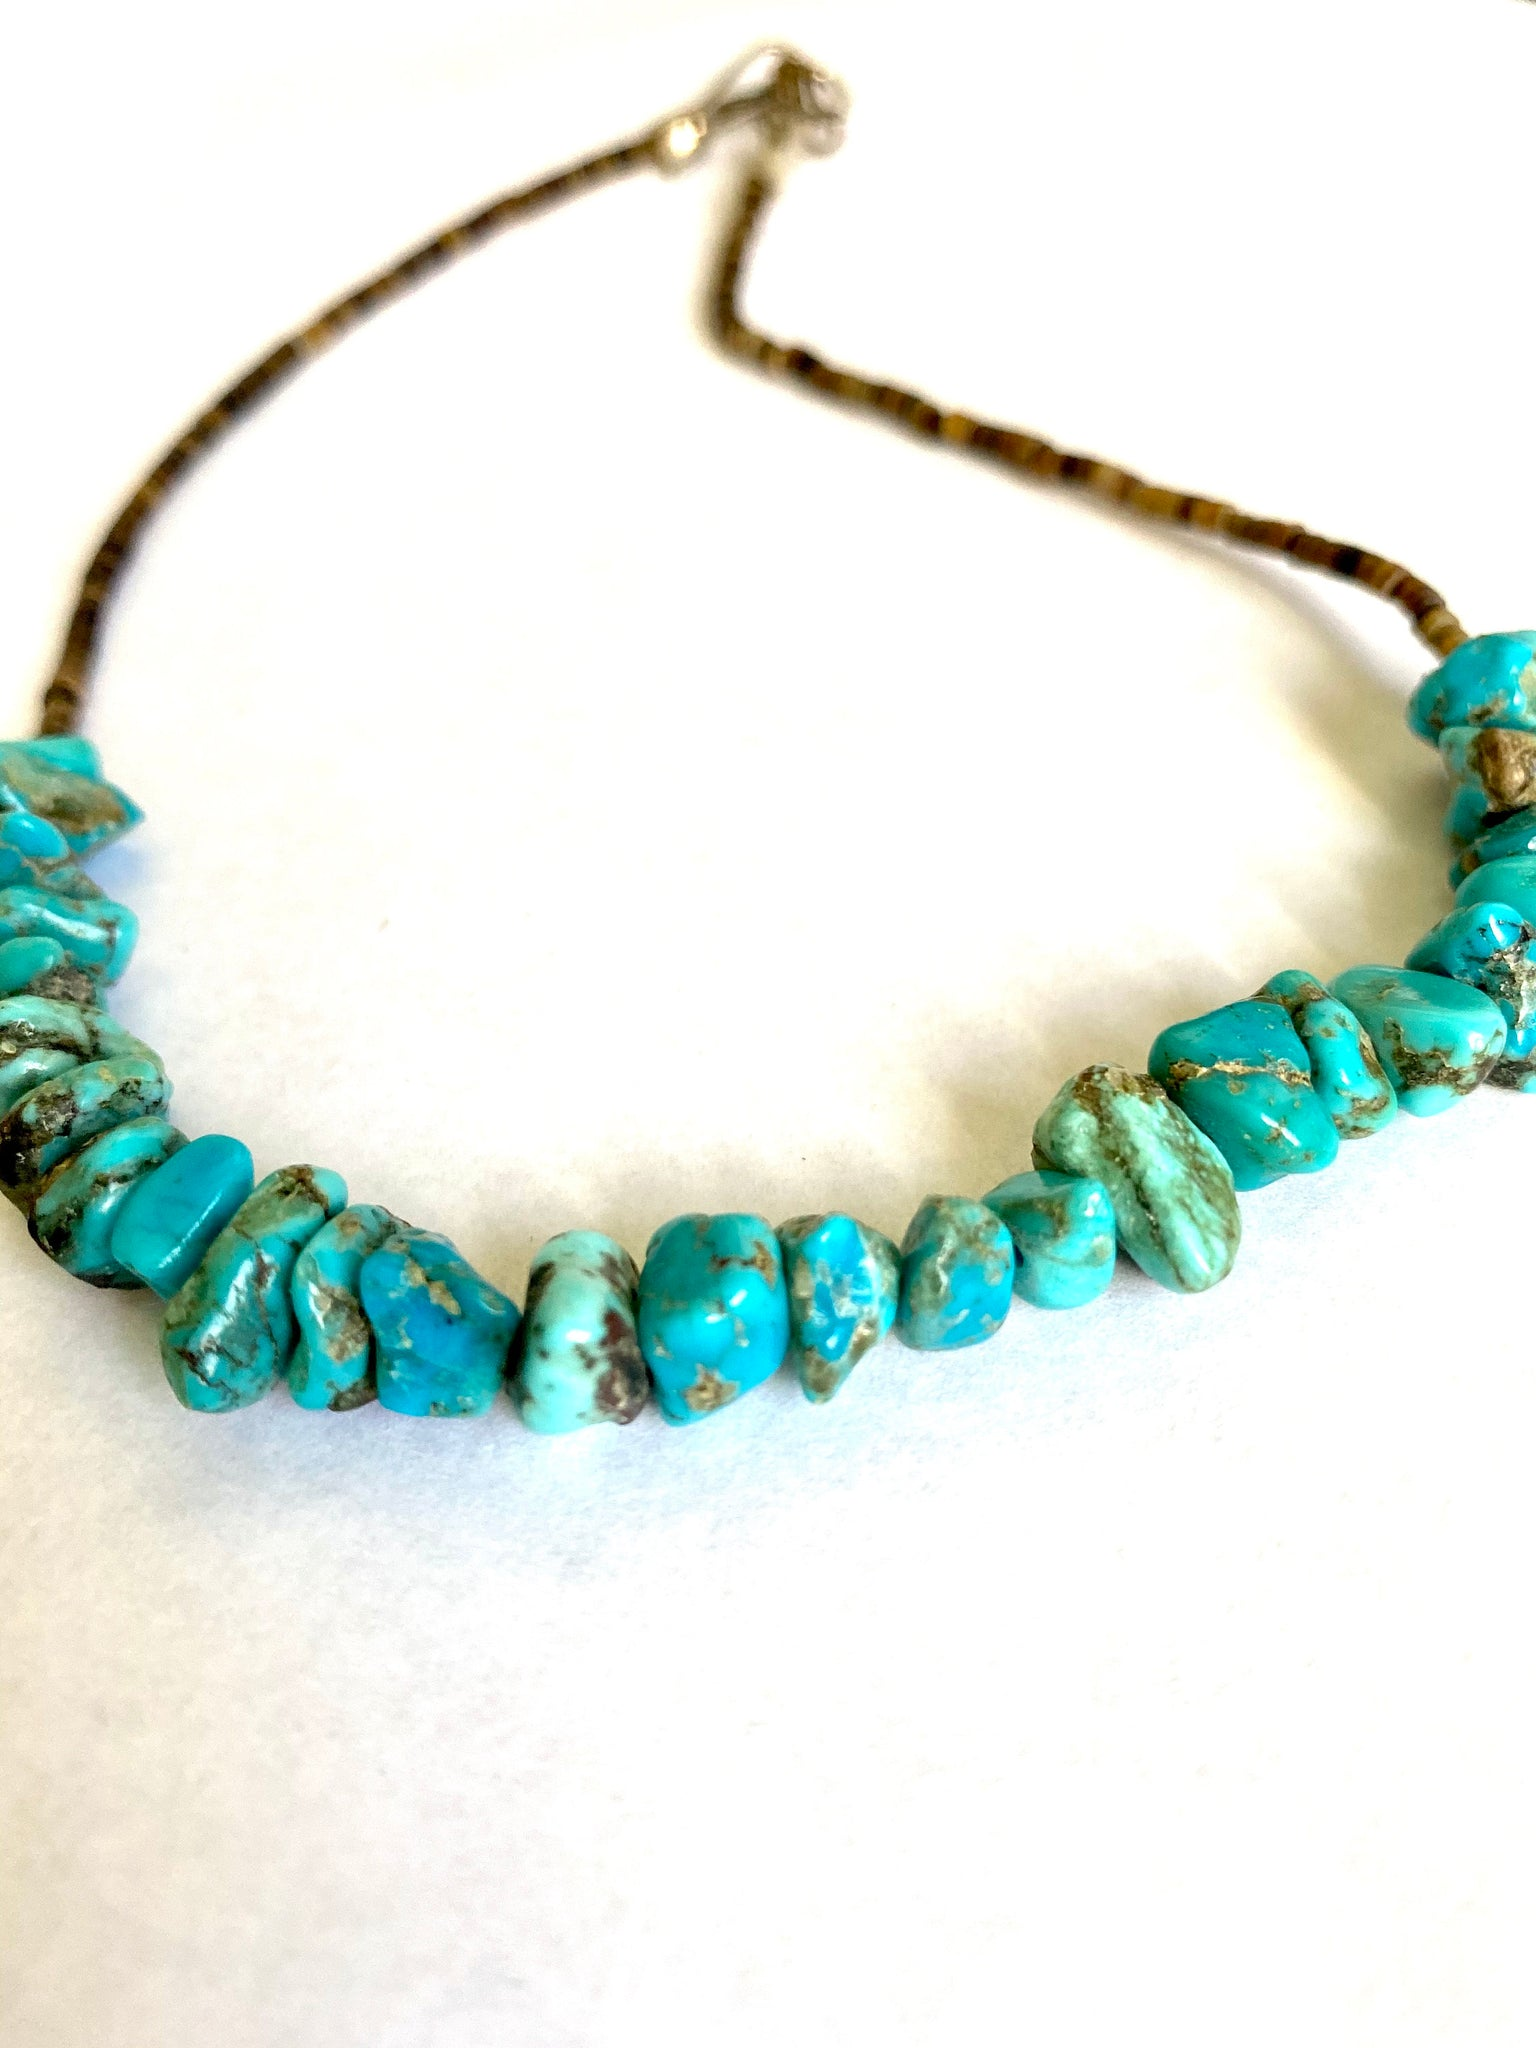 Chunky Turquoise Nugget  Choker Necklace with Penshell Heshi .